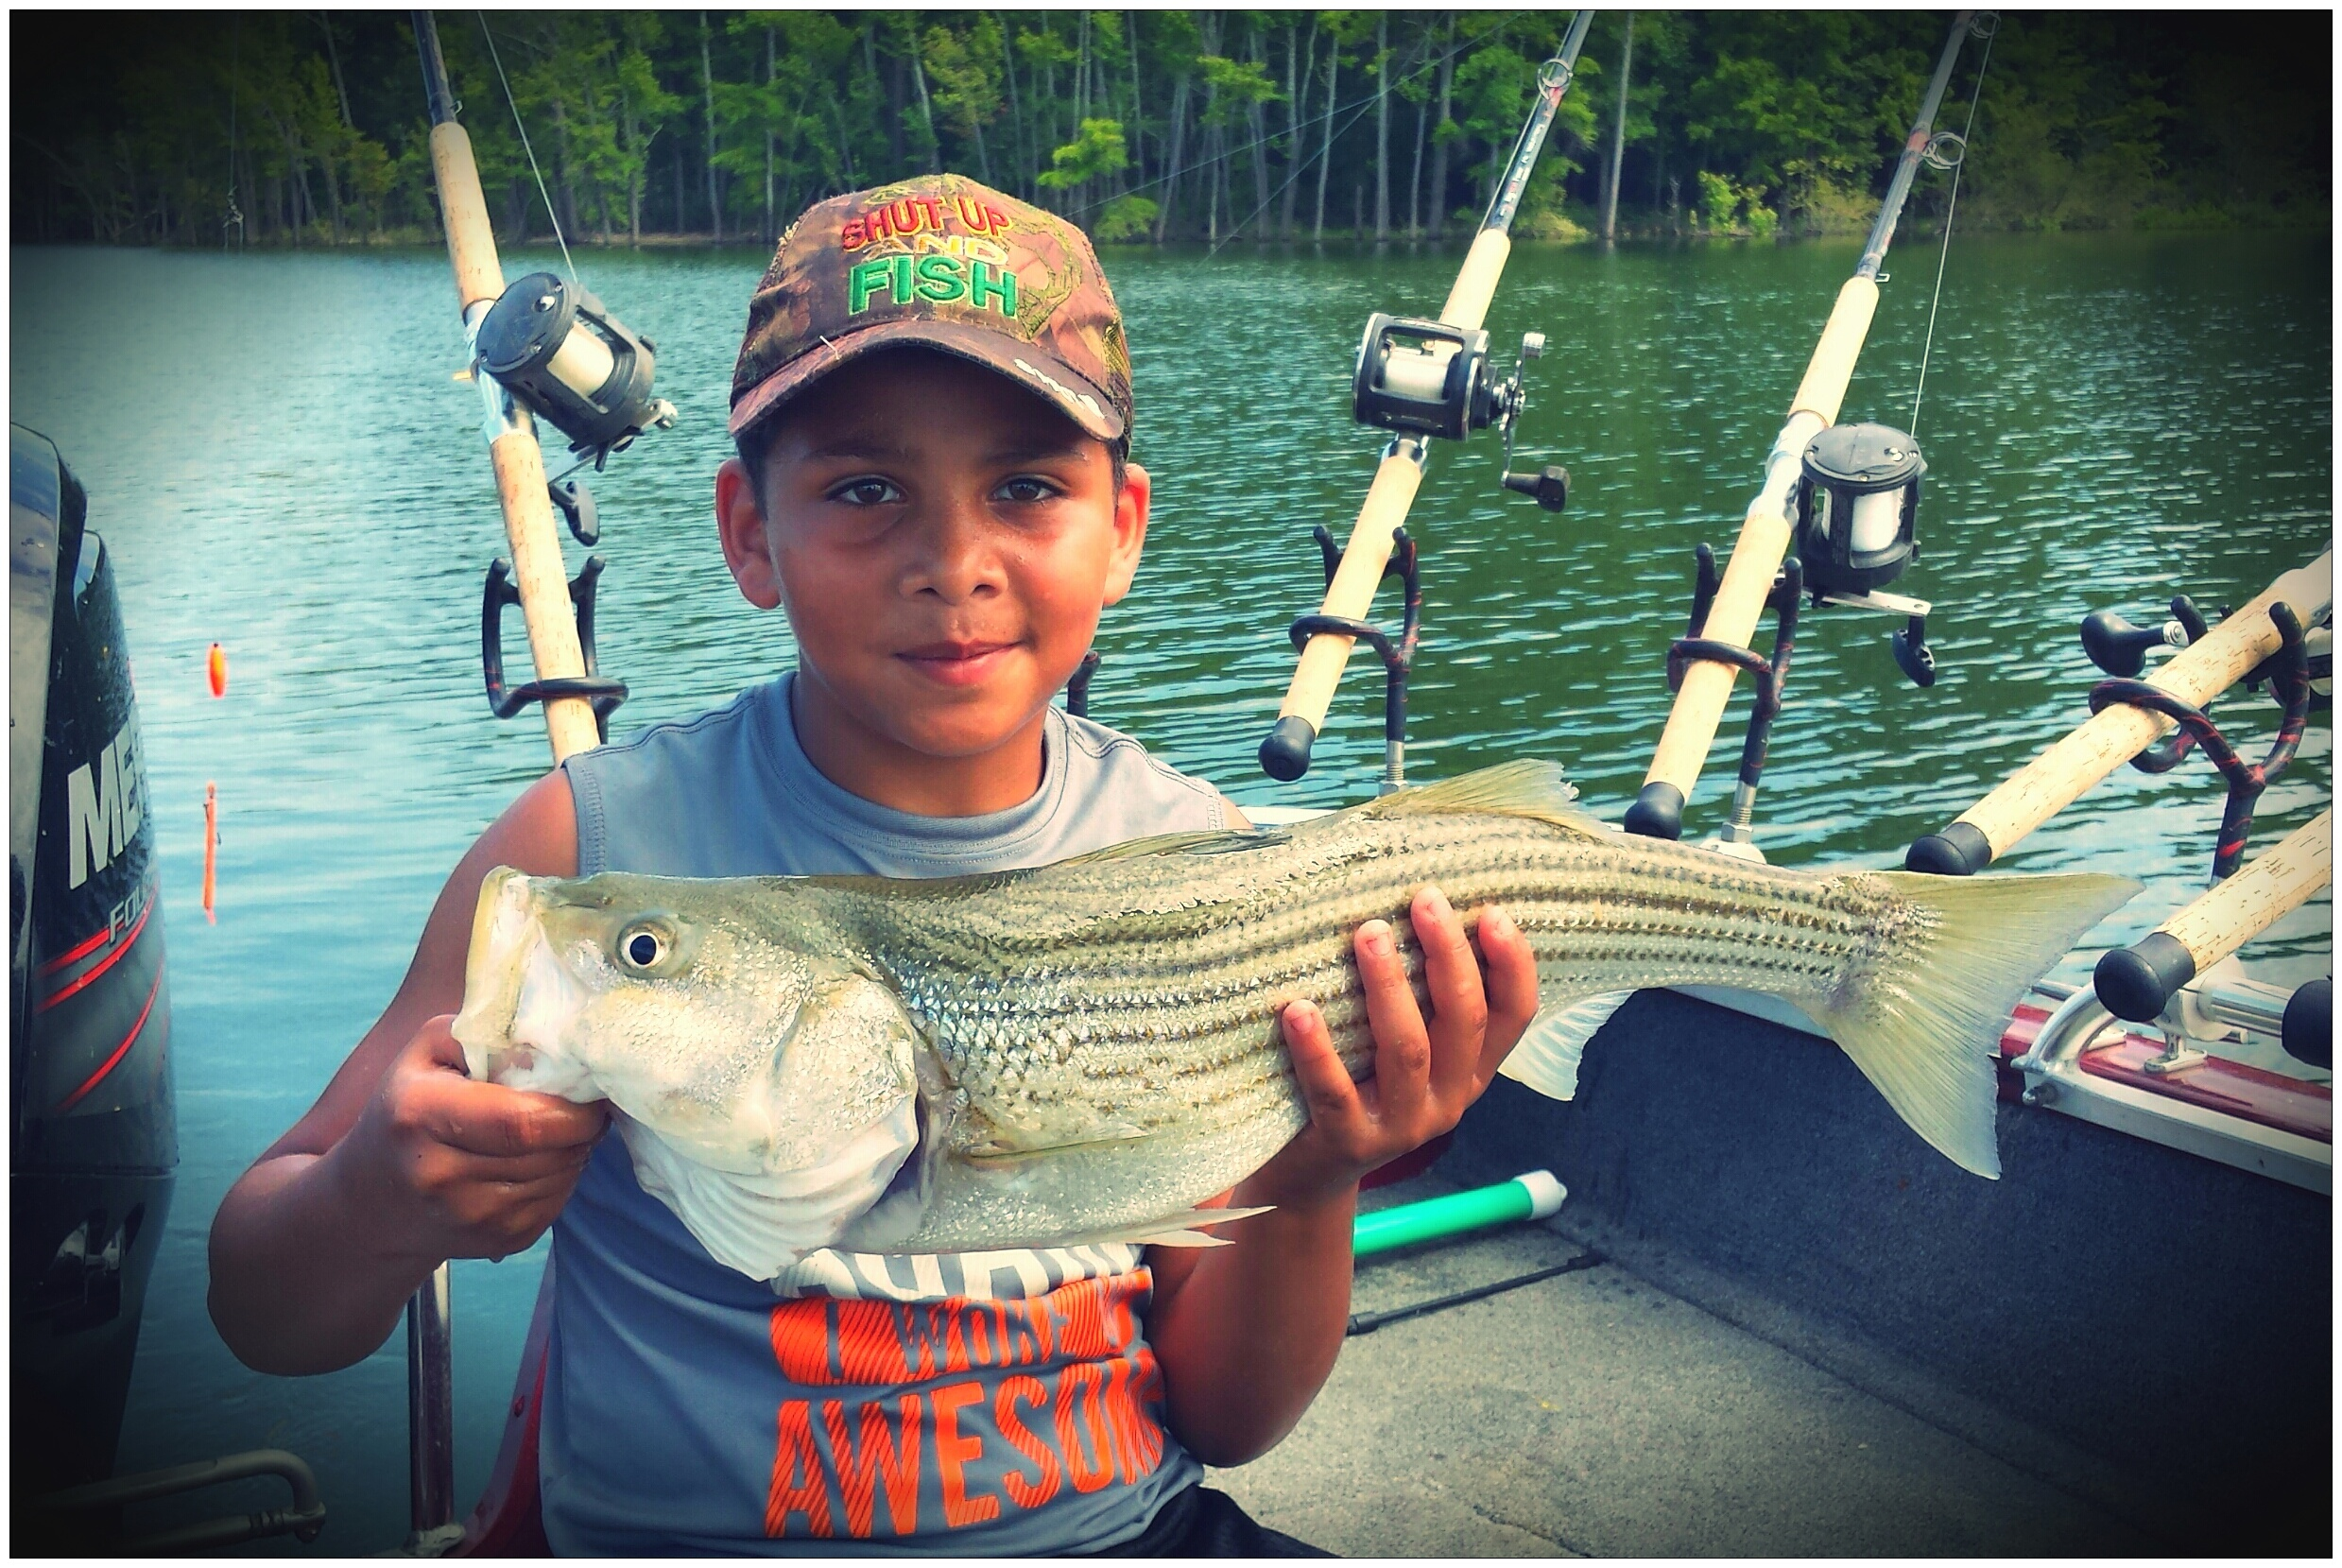 Fish of the day hookup site